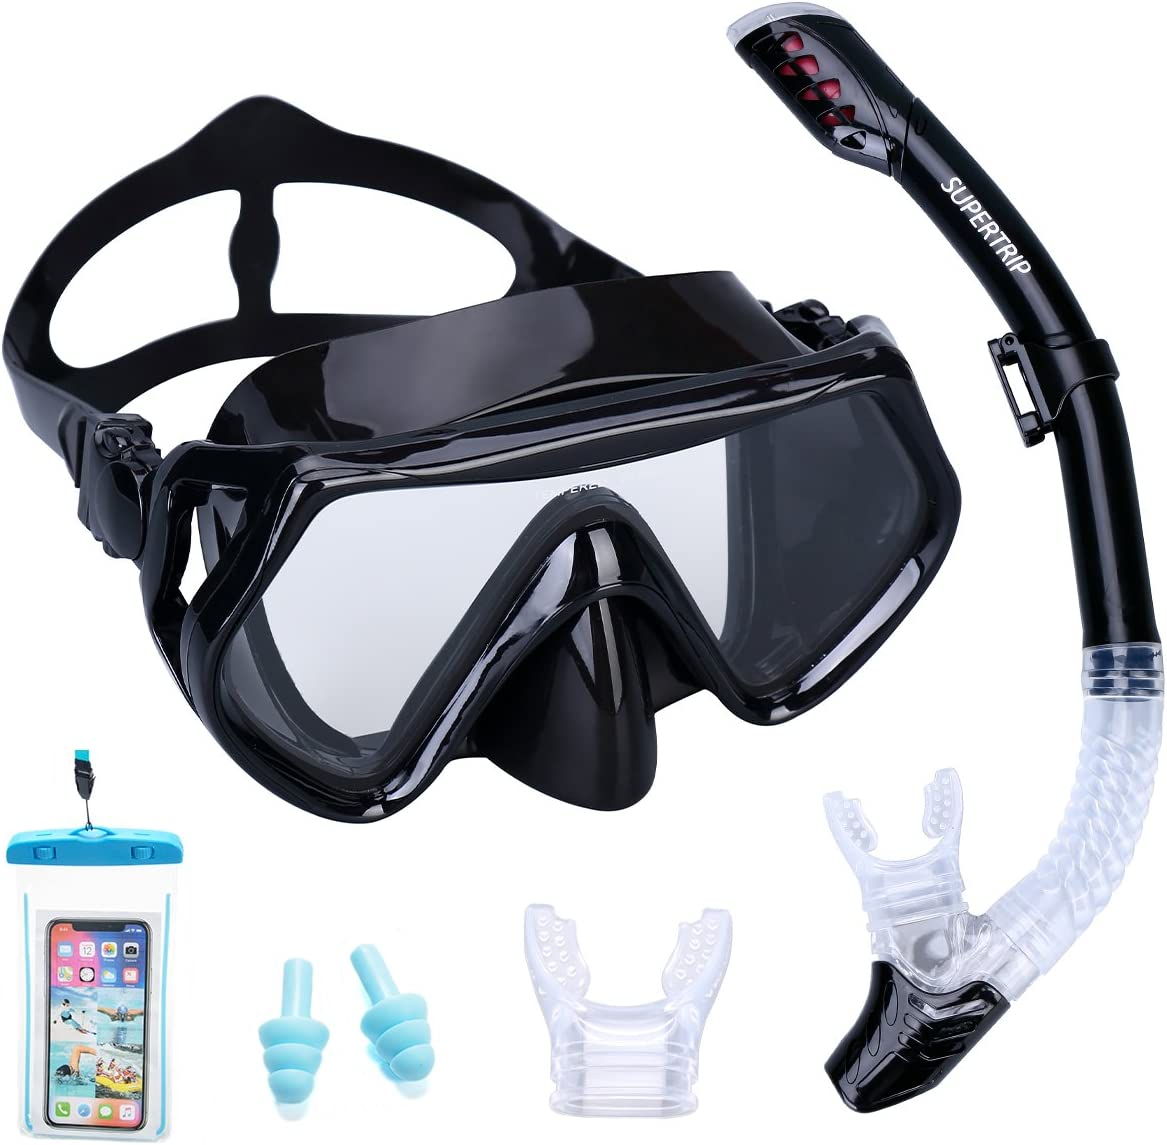 Supertrip Snorkel Set Adults-Anti-Fog Film Scuba Snorkeling Diving Mask with Impact Resistant Temperred Glass|Dry Top Snorkel, 2 Mouthpieces 1 Waterproof Case Included Black : Sports & Outdoors